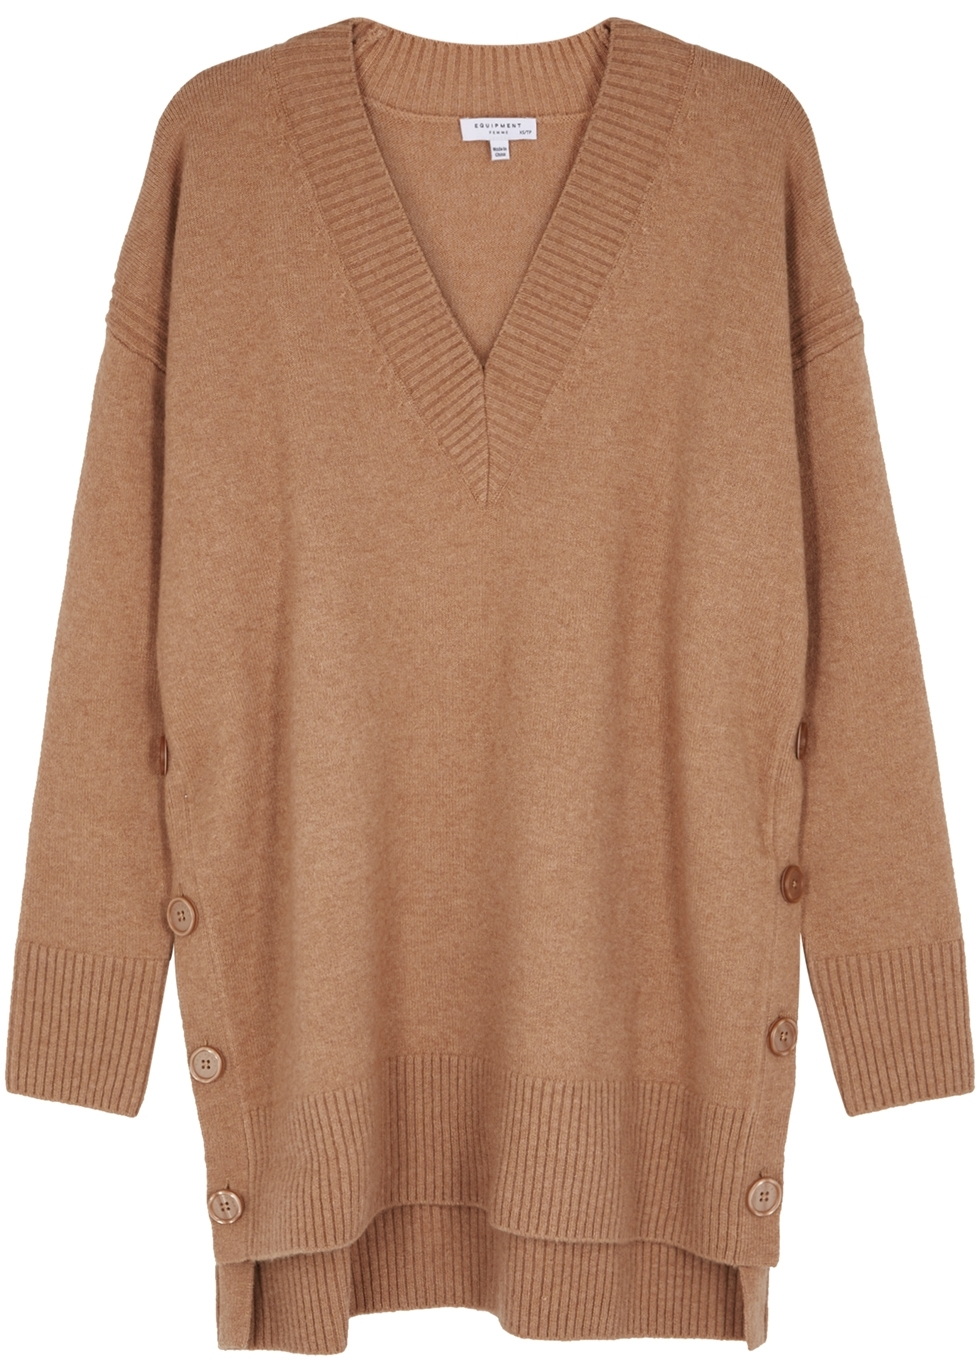 fb3cceaabea55 Women s Designer Knitwear and Jumpers - Harvey Nichols